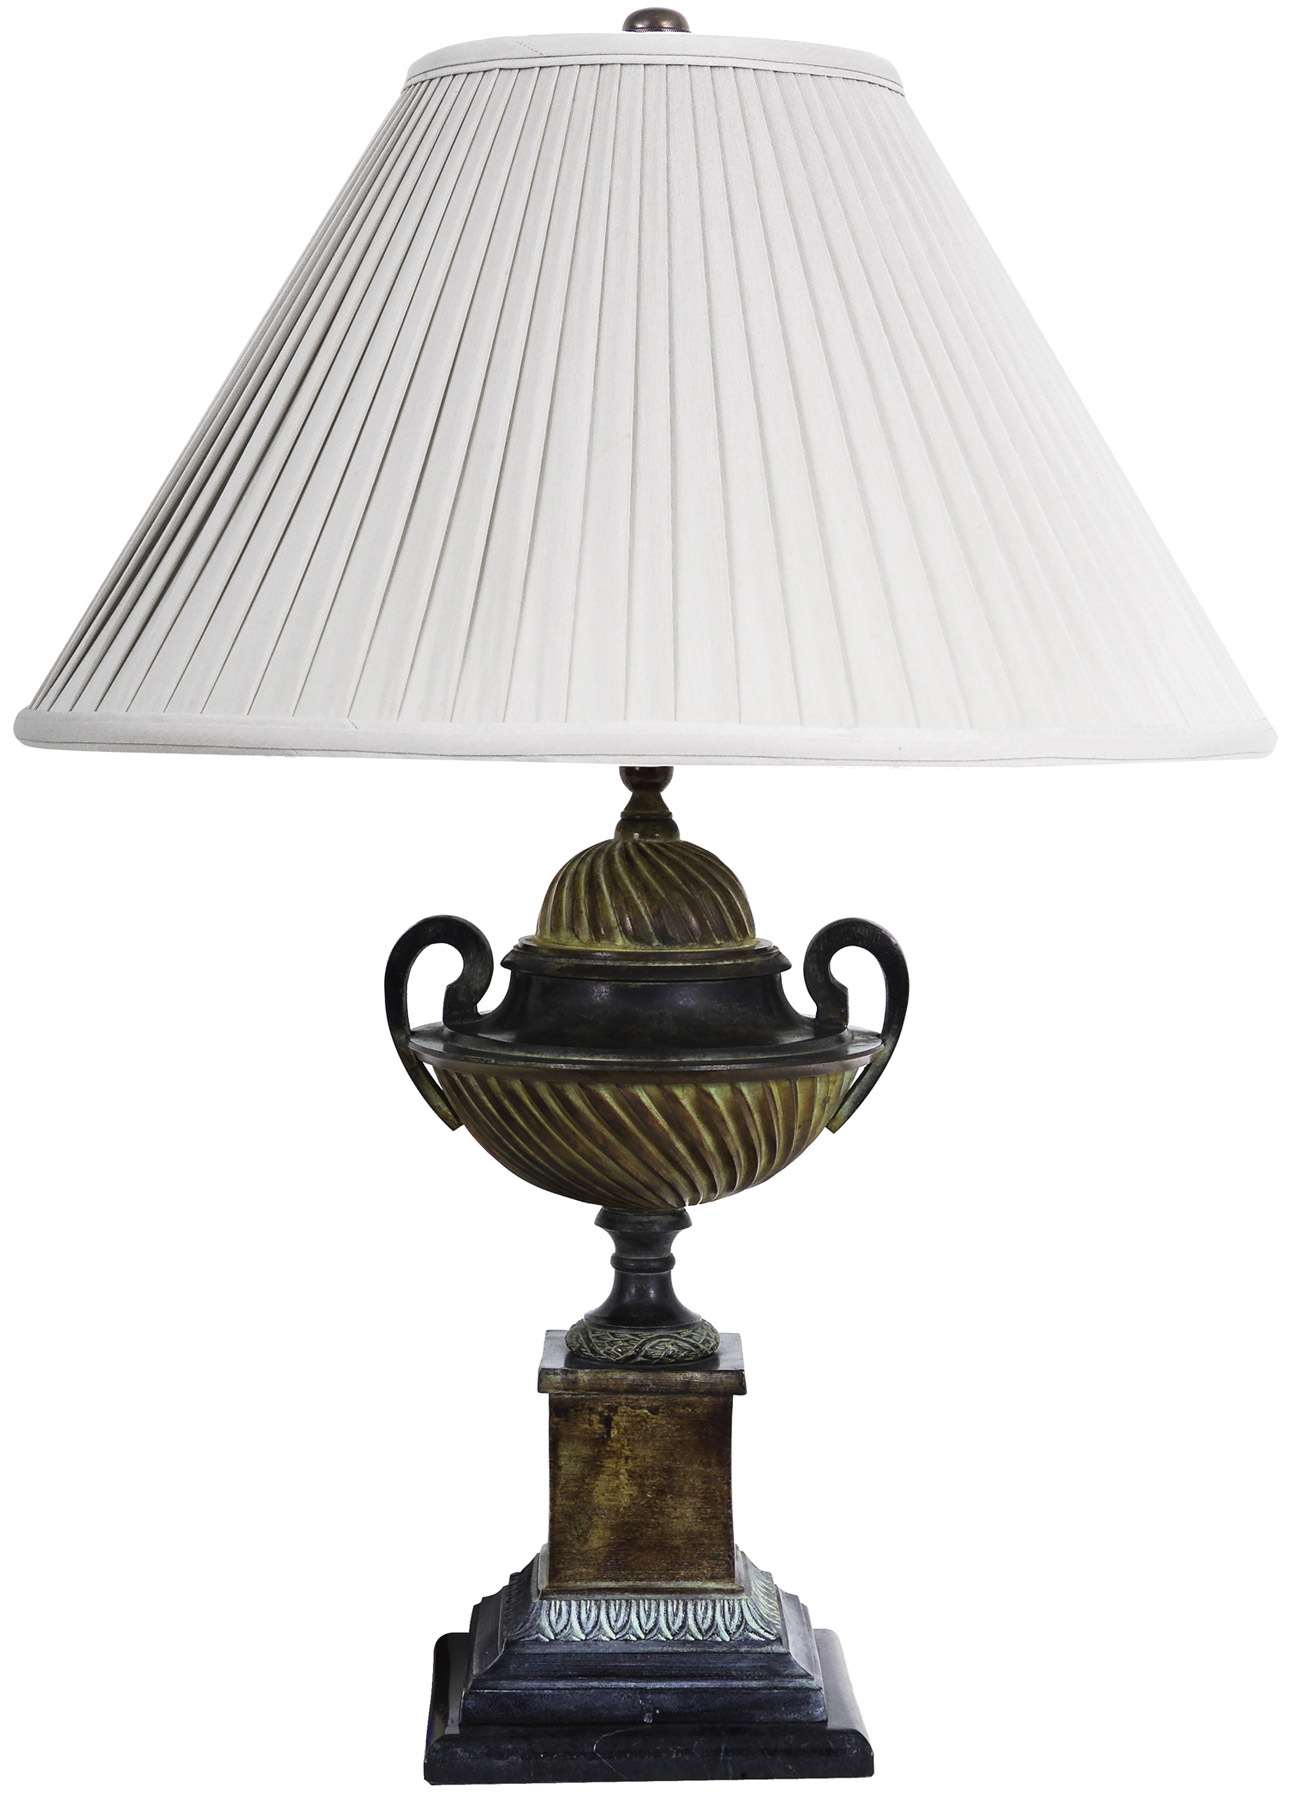 frederick cooper table lamps photo - 5